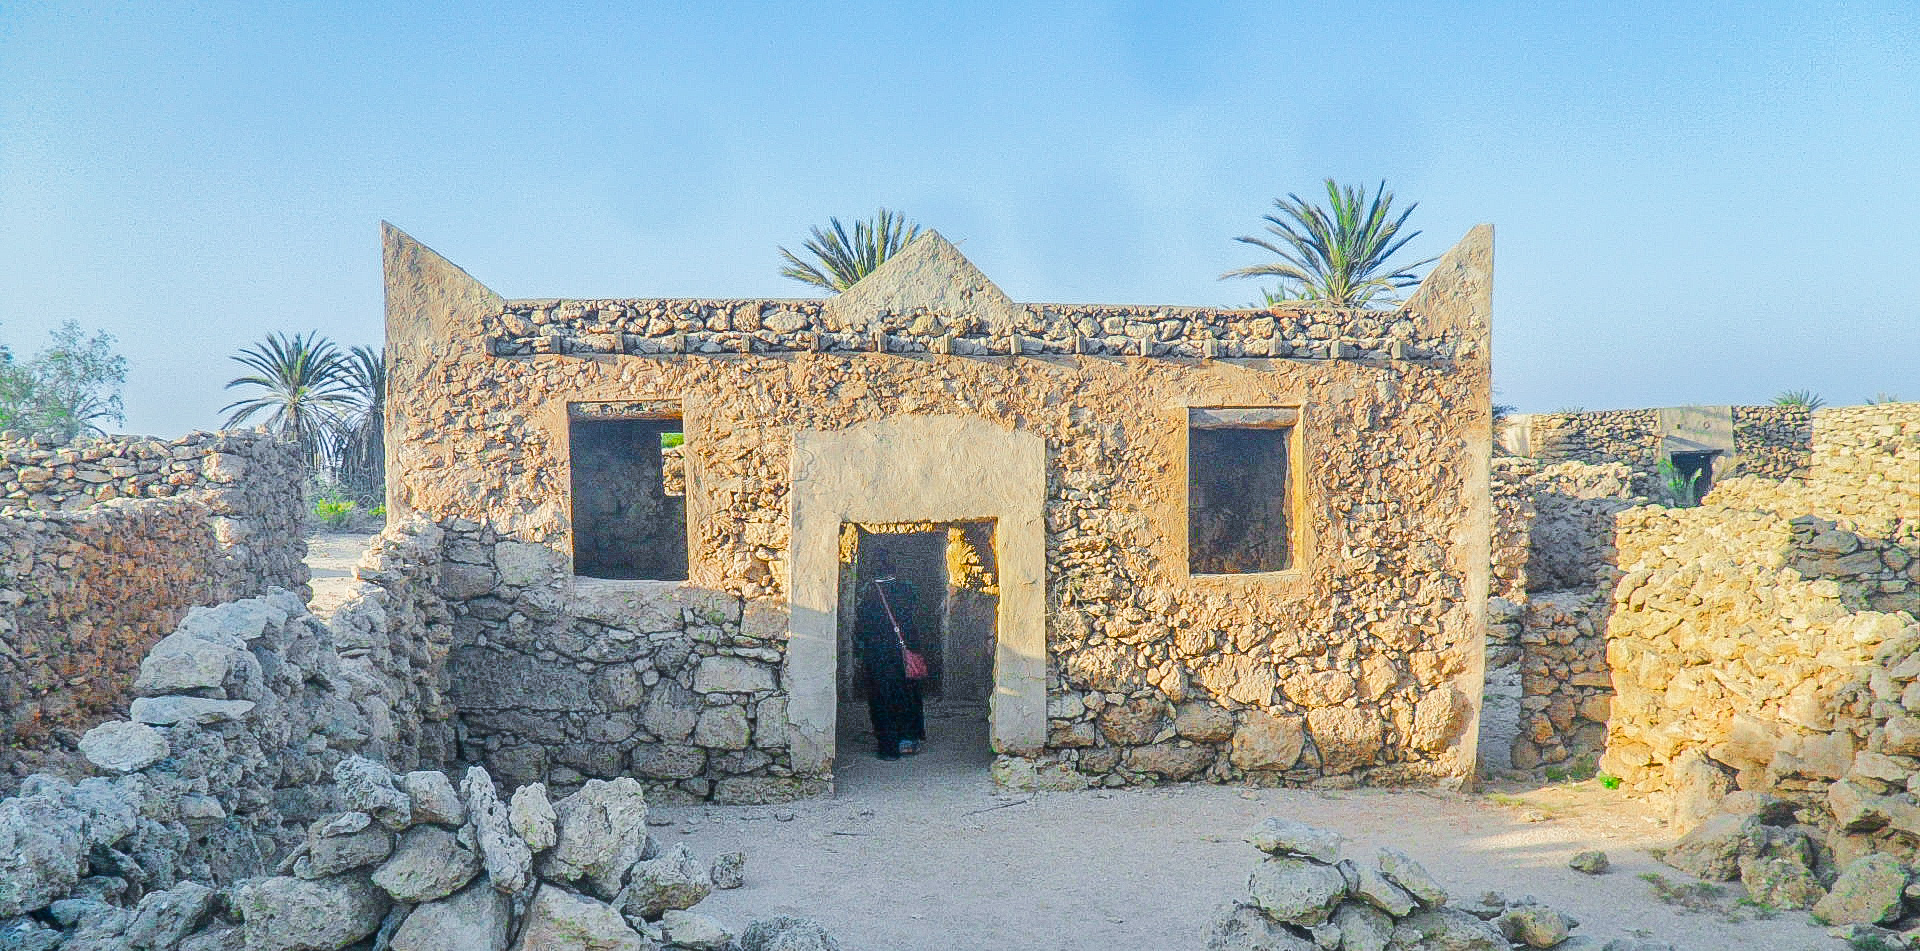 Old mosque at Al-Qassar village in Farasan Al-Kebir (photo: F. Egal)